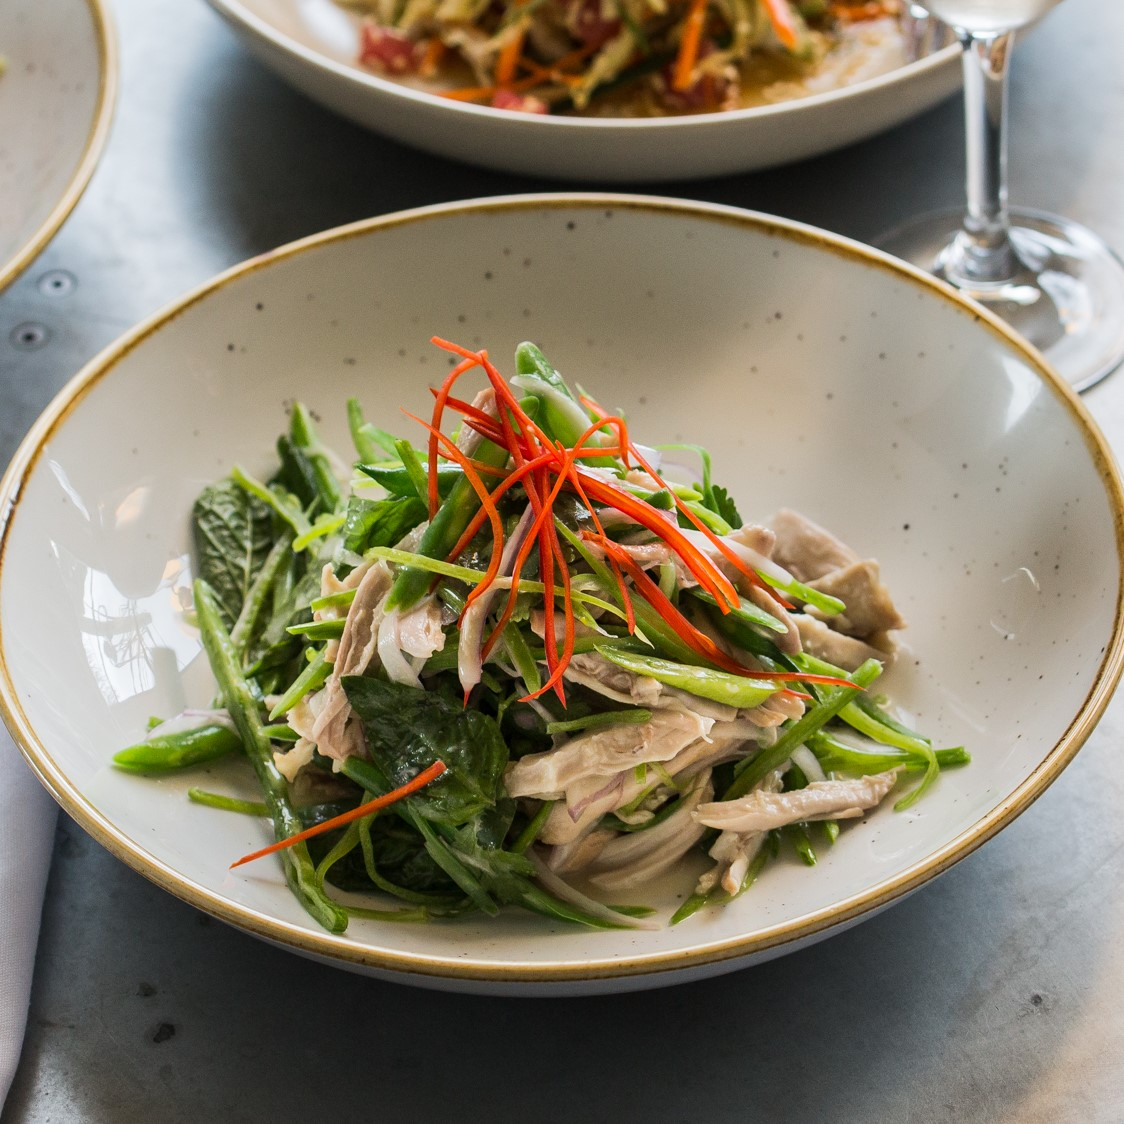 Poached Chicken | snow peas, green beans, bean sprouts, eschallots, Asian herbs, chilli & coconut-lime dressing | 22